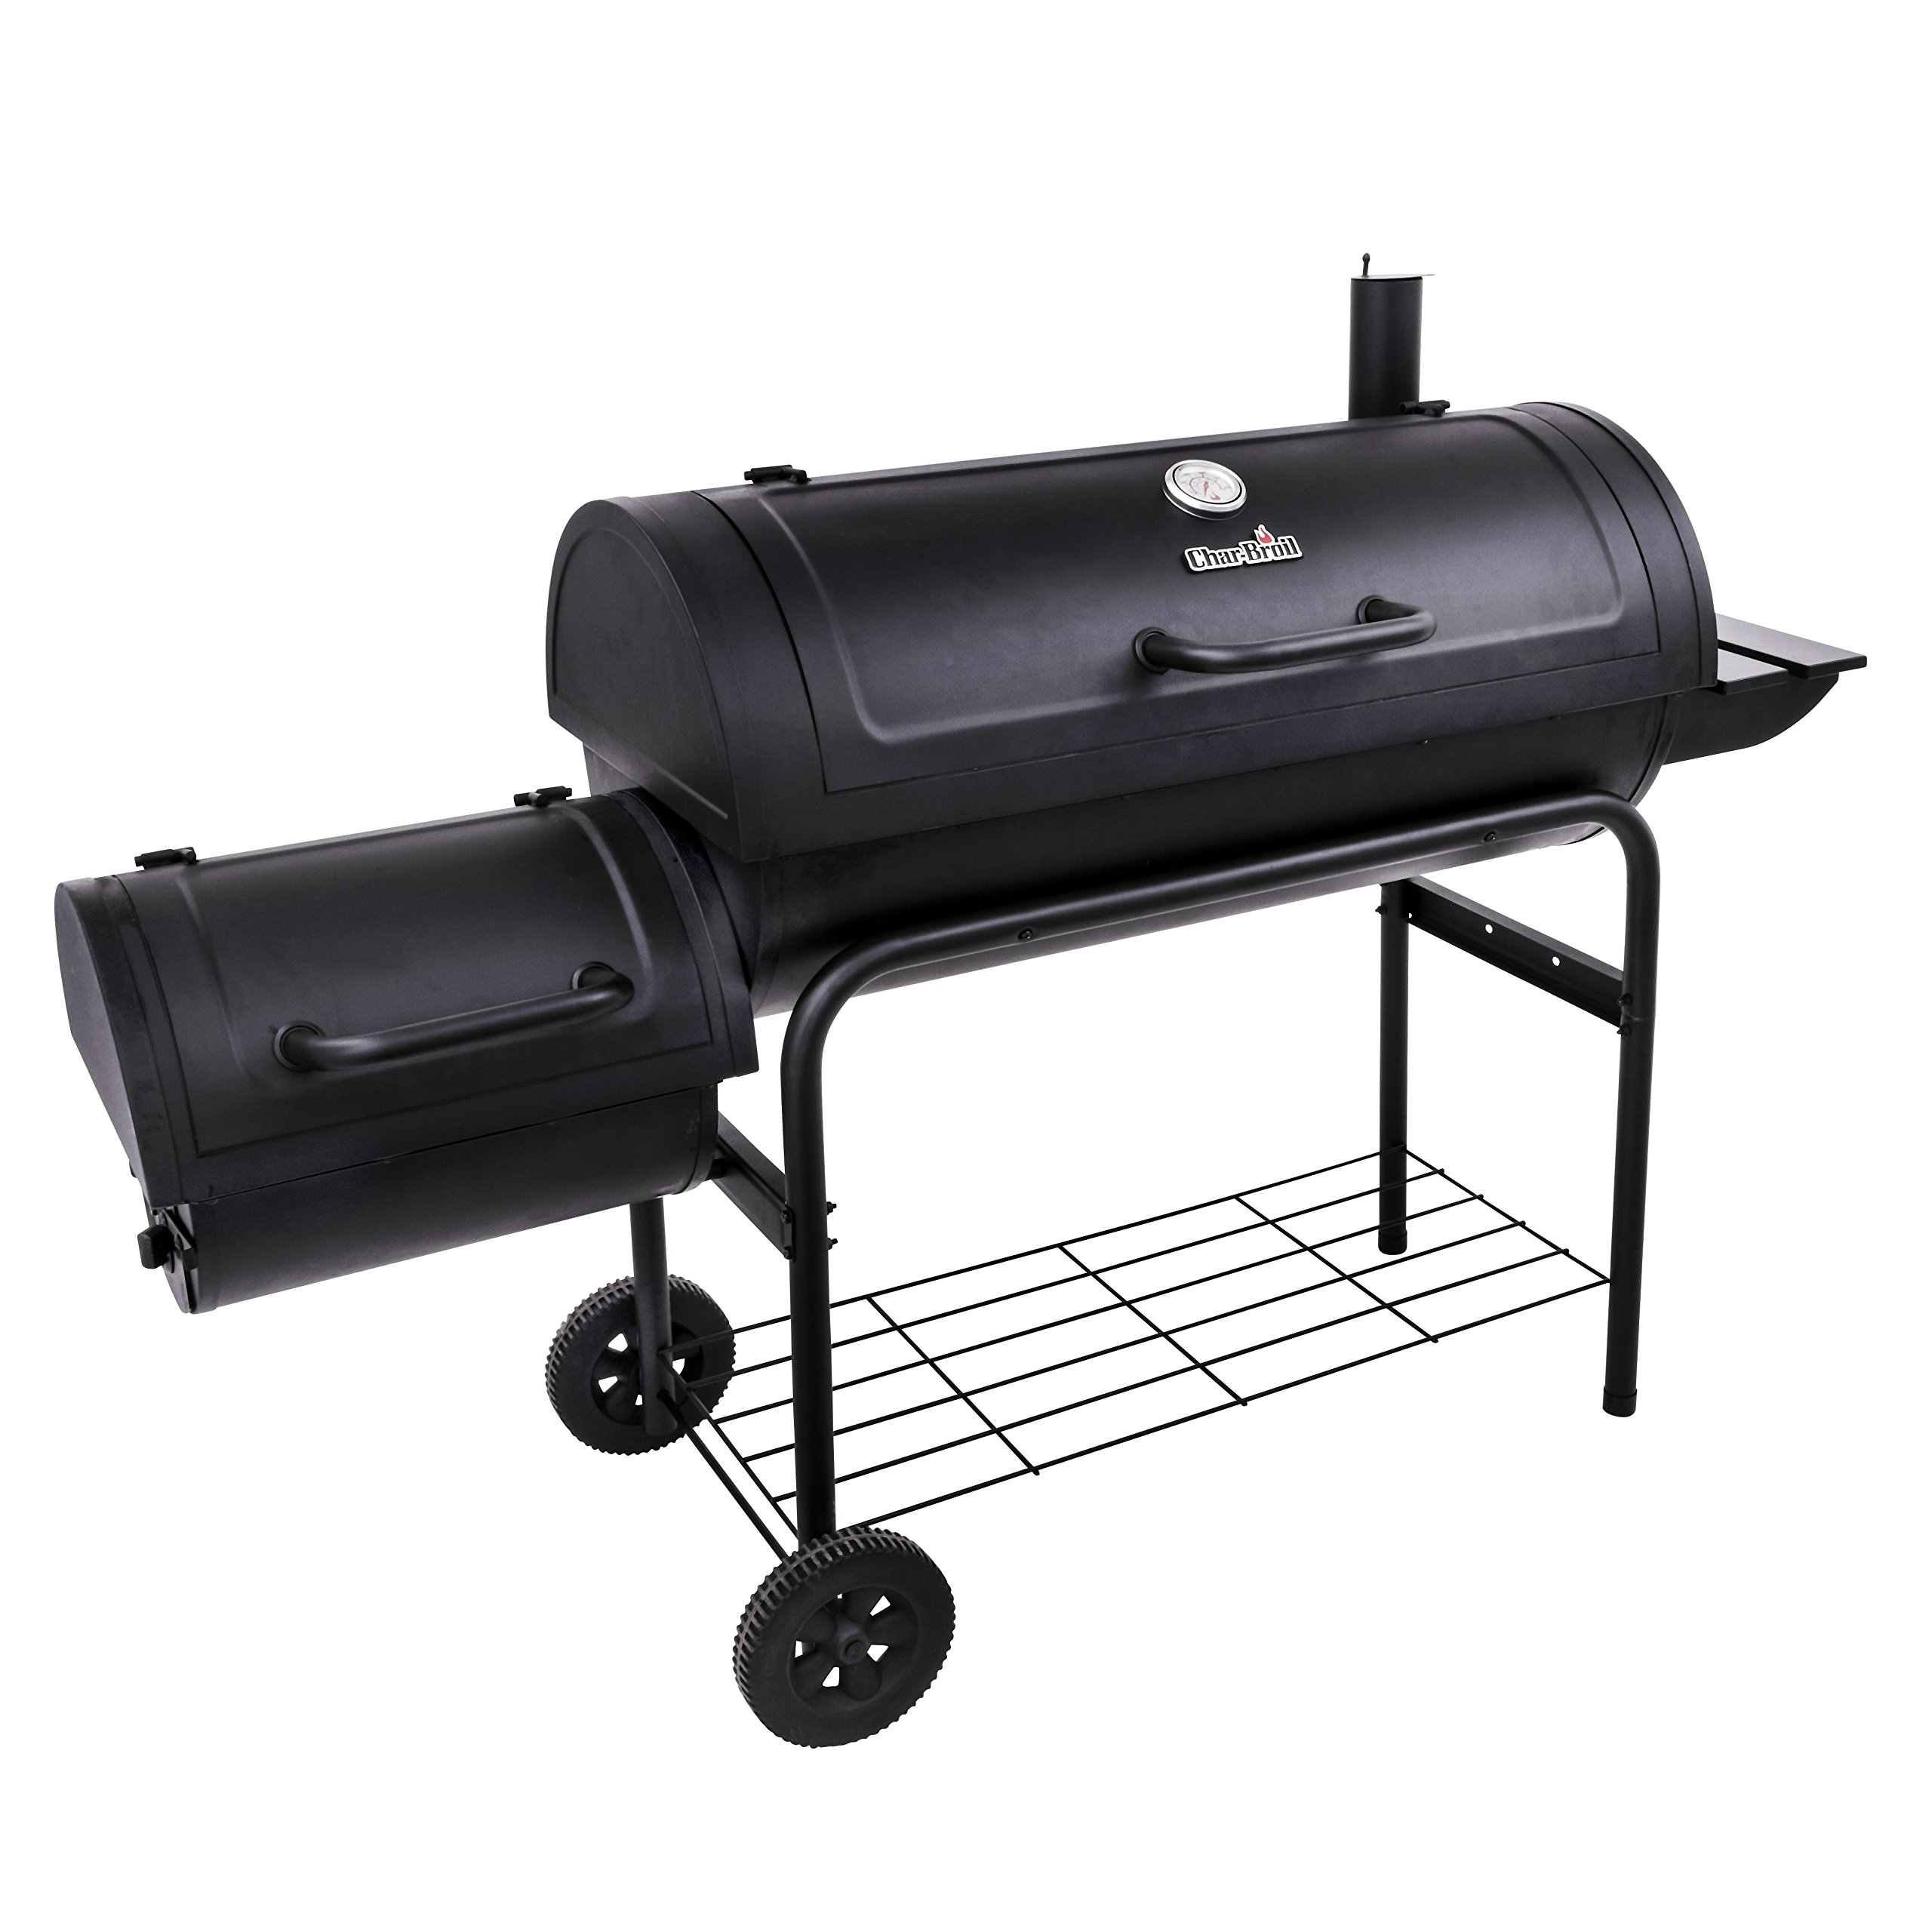 Char-Broil Offset Smoker, 40'' by Char-Broil (Image #1)